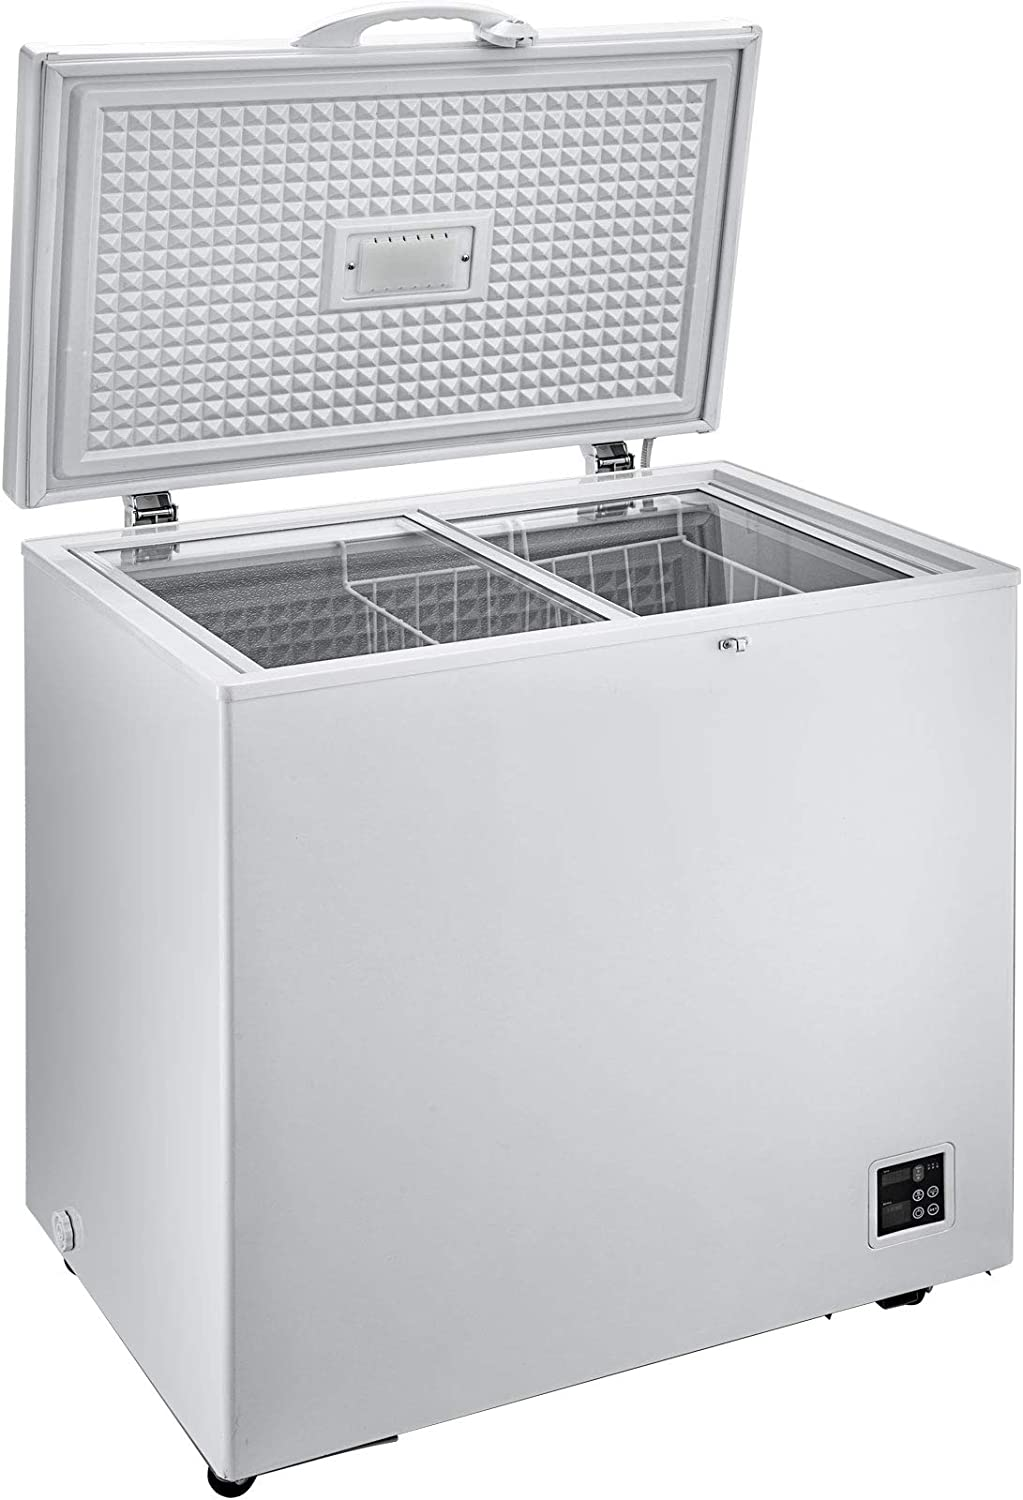 VBENLEM Chest Freezer,167 Quart Commercial RV Deep Freezer,5.6 cu.ft Compact Vehicle Electric Cooler Fridge,12V//24V DC With Lock for Car Home Camping Truck Party,-0.4℉-32℉ Suit for Solar Power